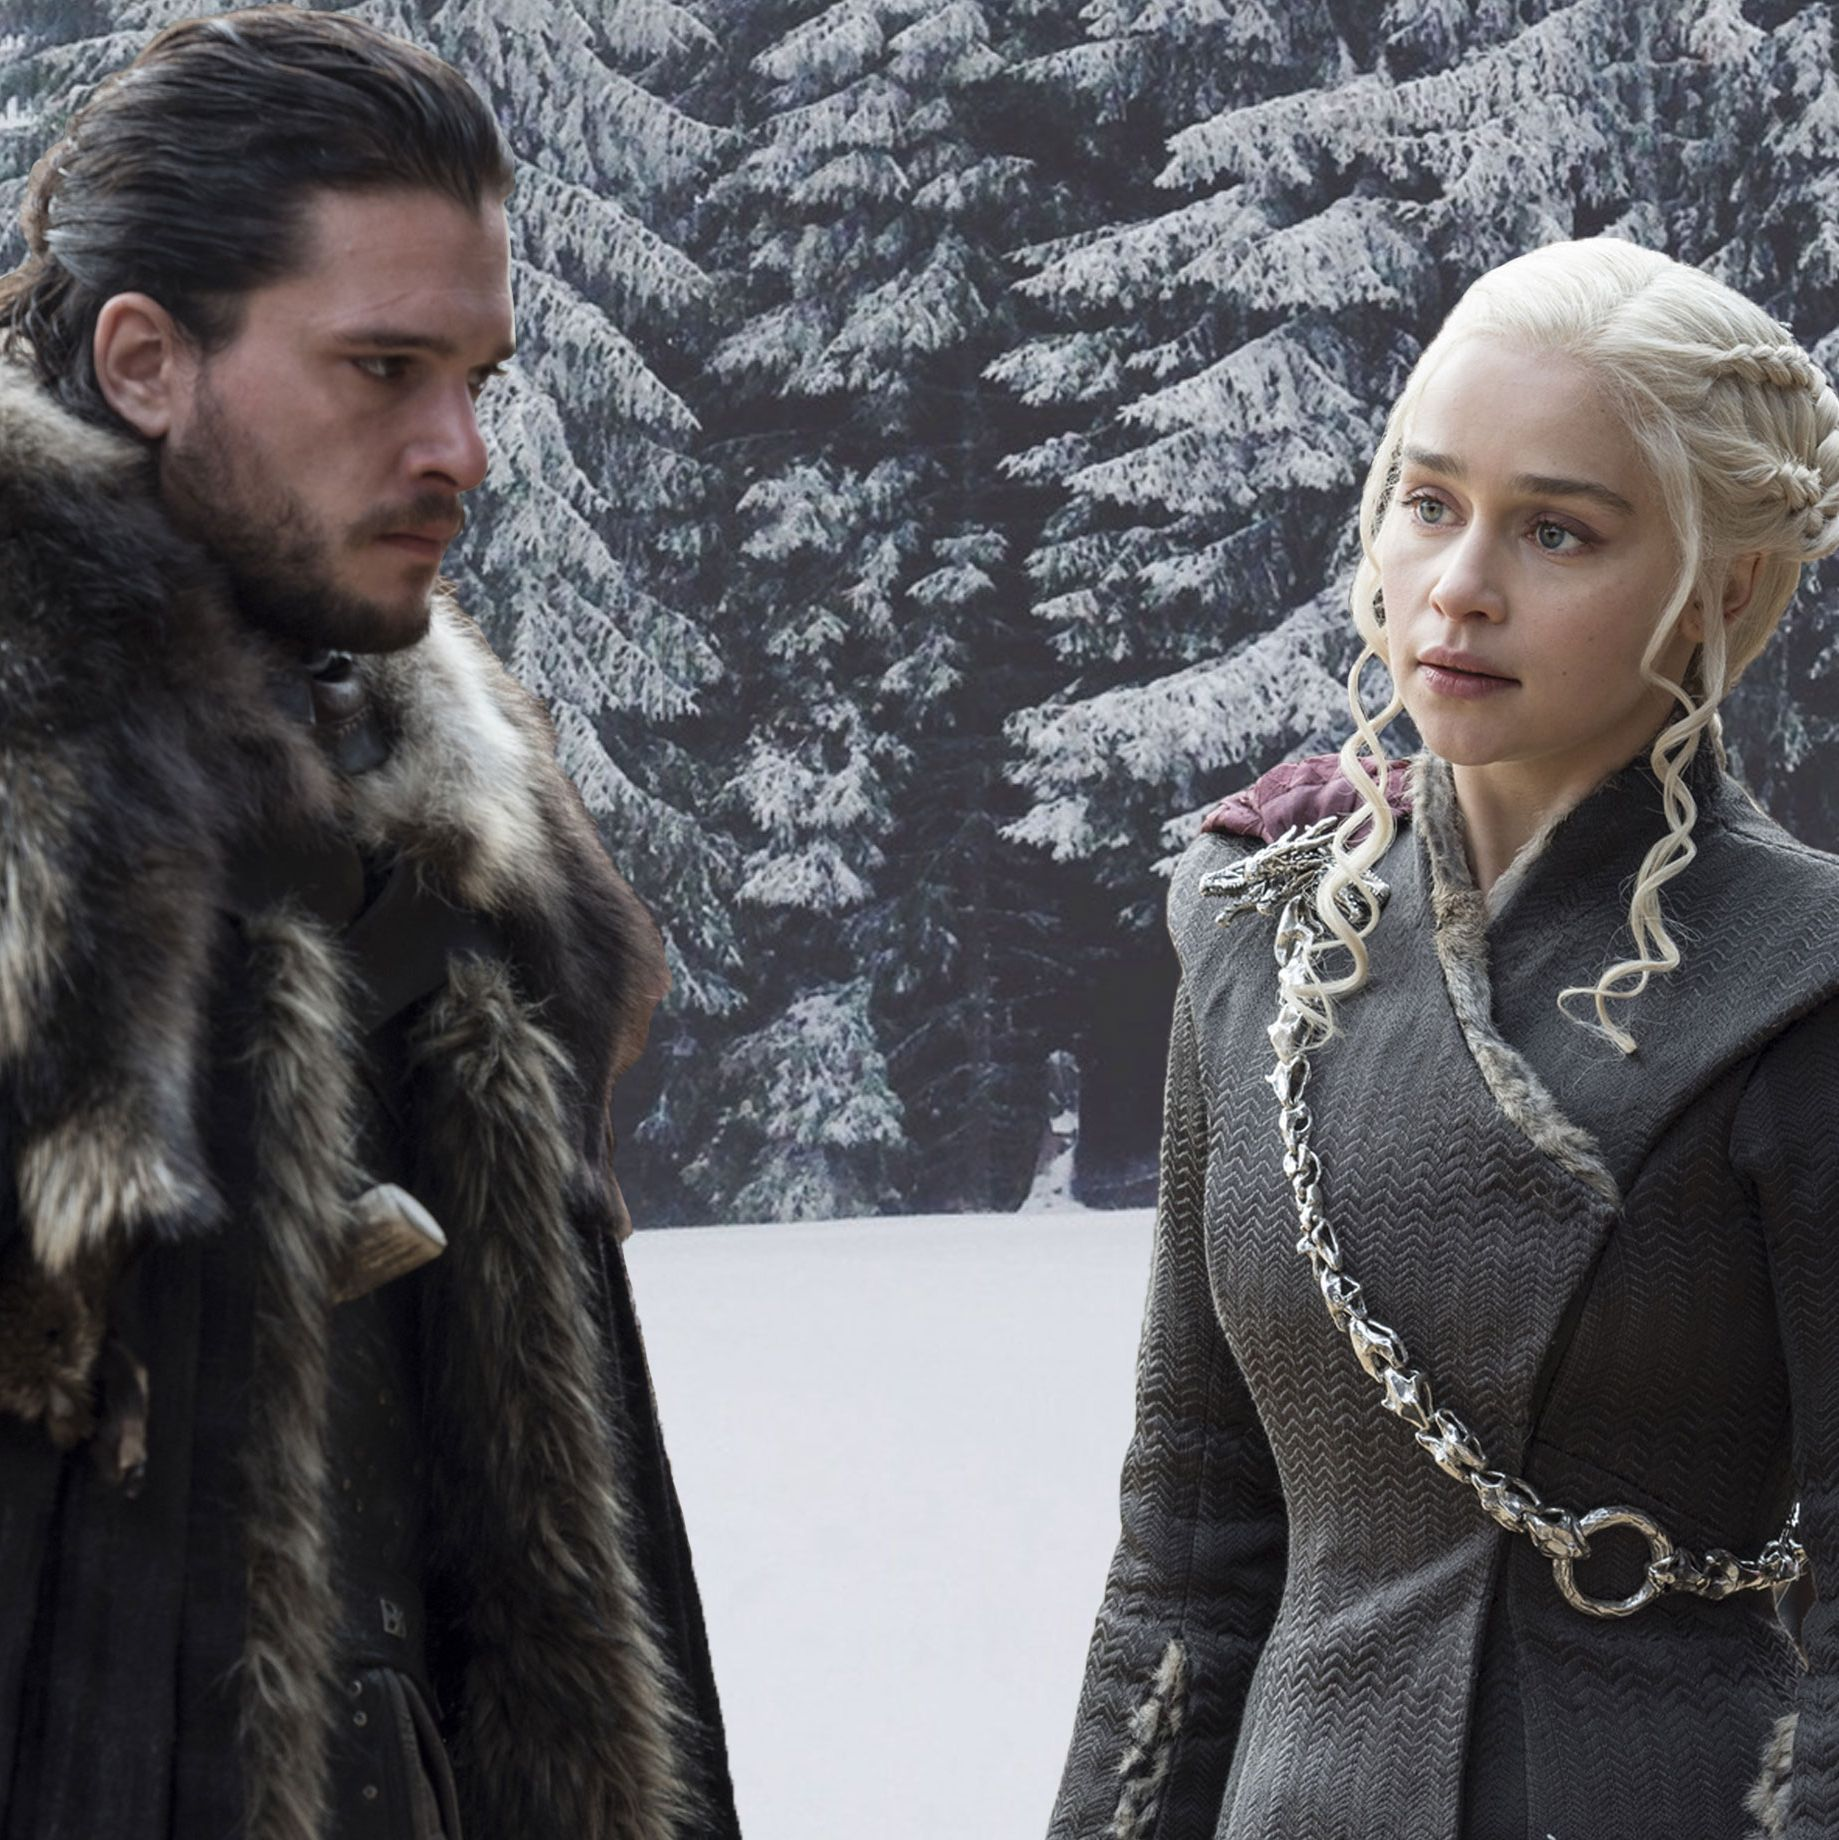 Game Of Thrones dropped another major hint at who ends up on the Iron Throne